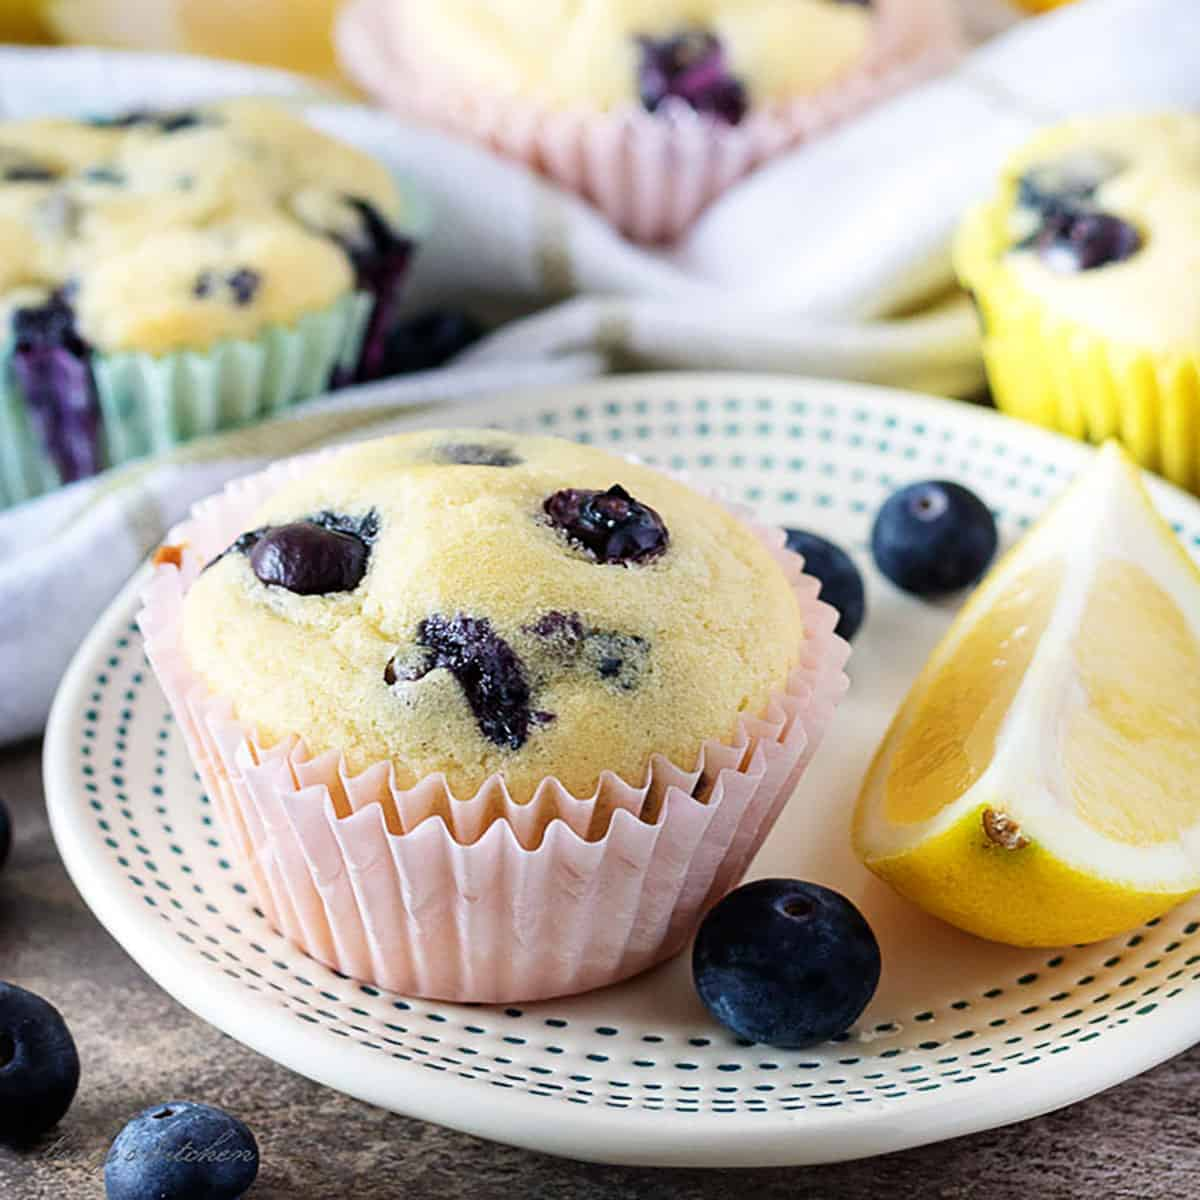 Lemon blueberry muffin on a plate with a slice of lemon and fresh blueberries.